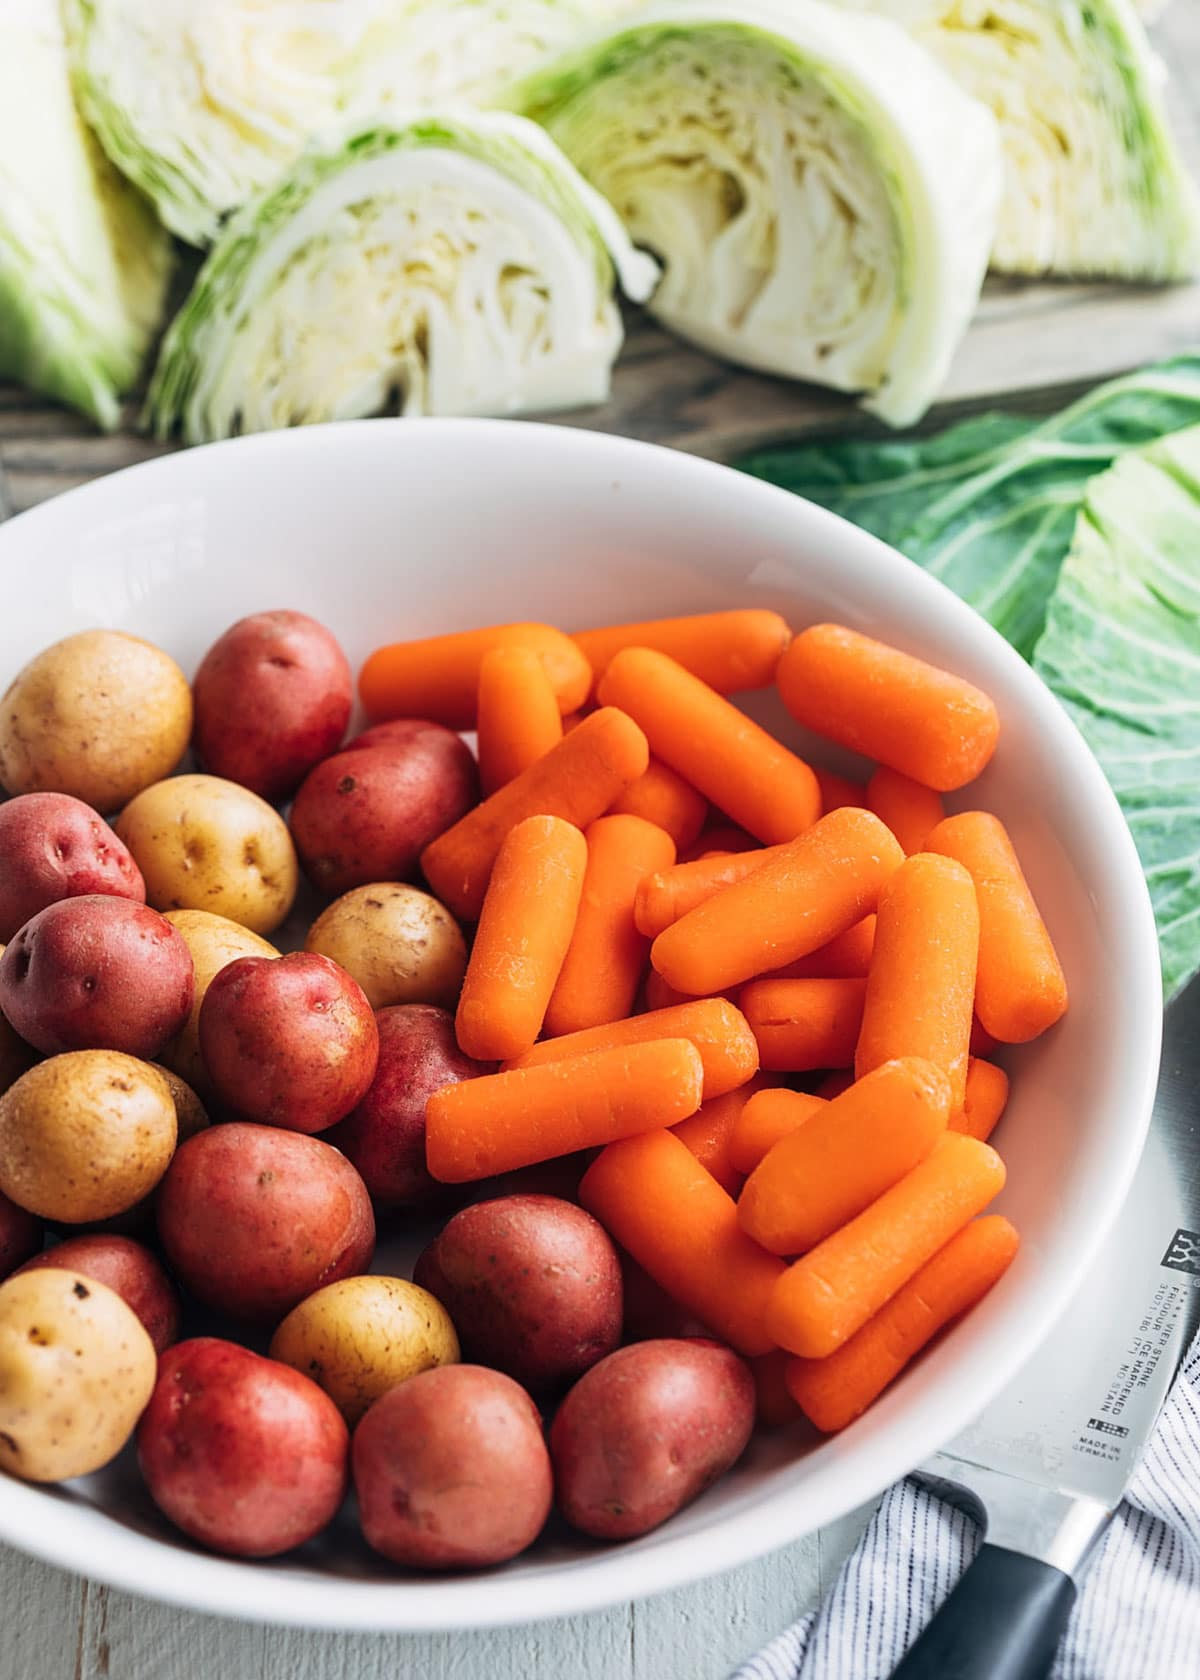 small potatoes and baby carrots in a white bowl surrounded by green cabbage wedges